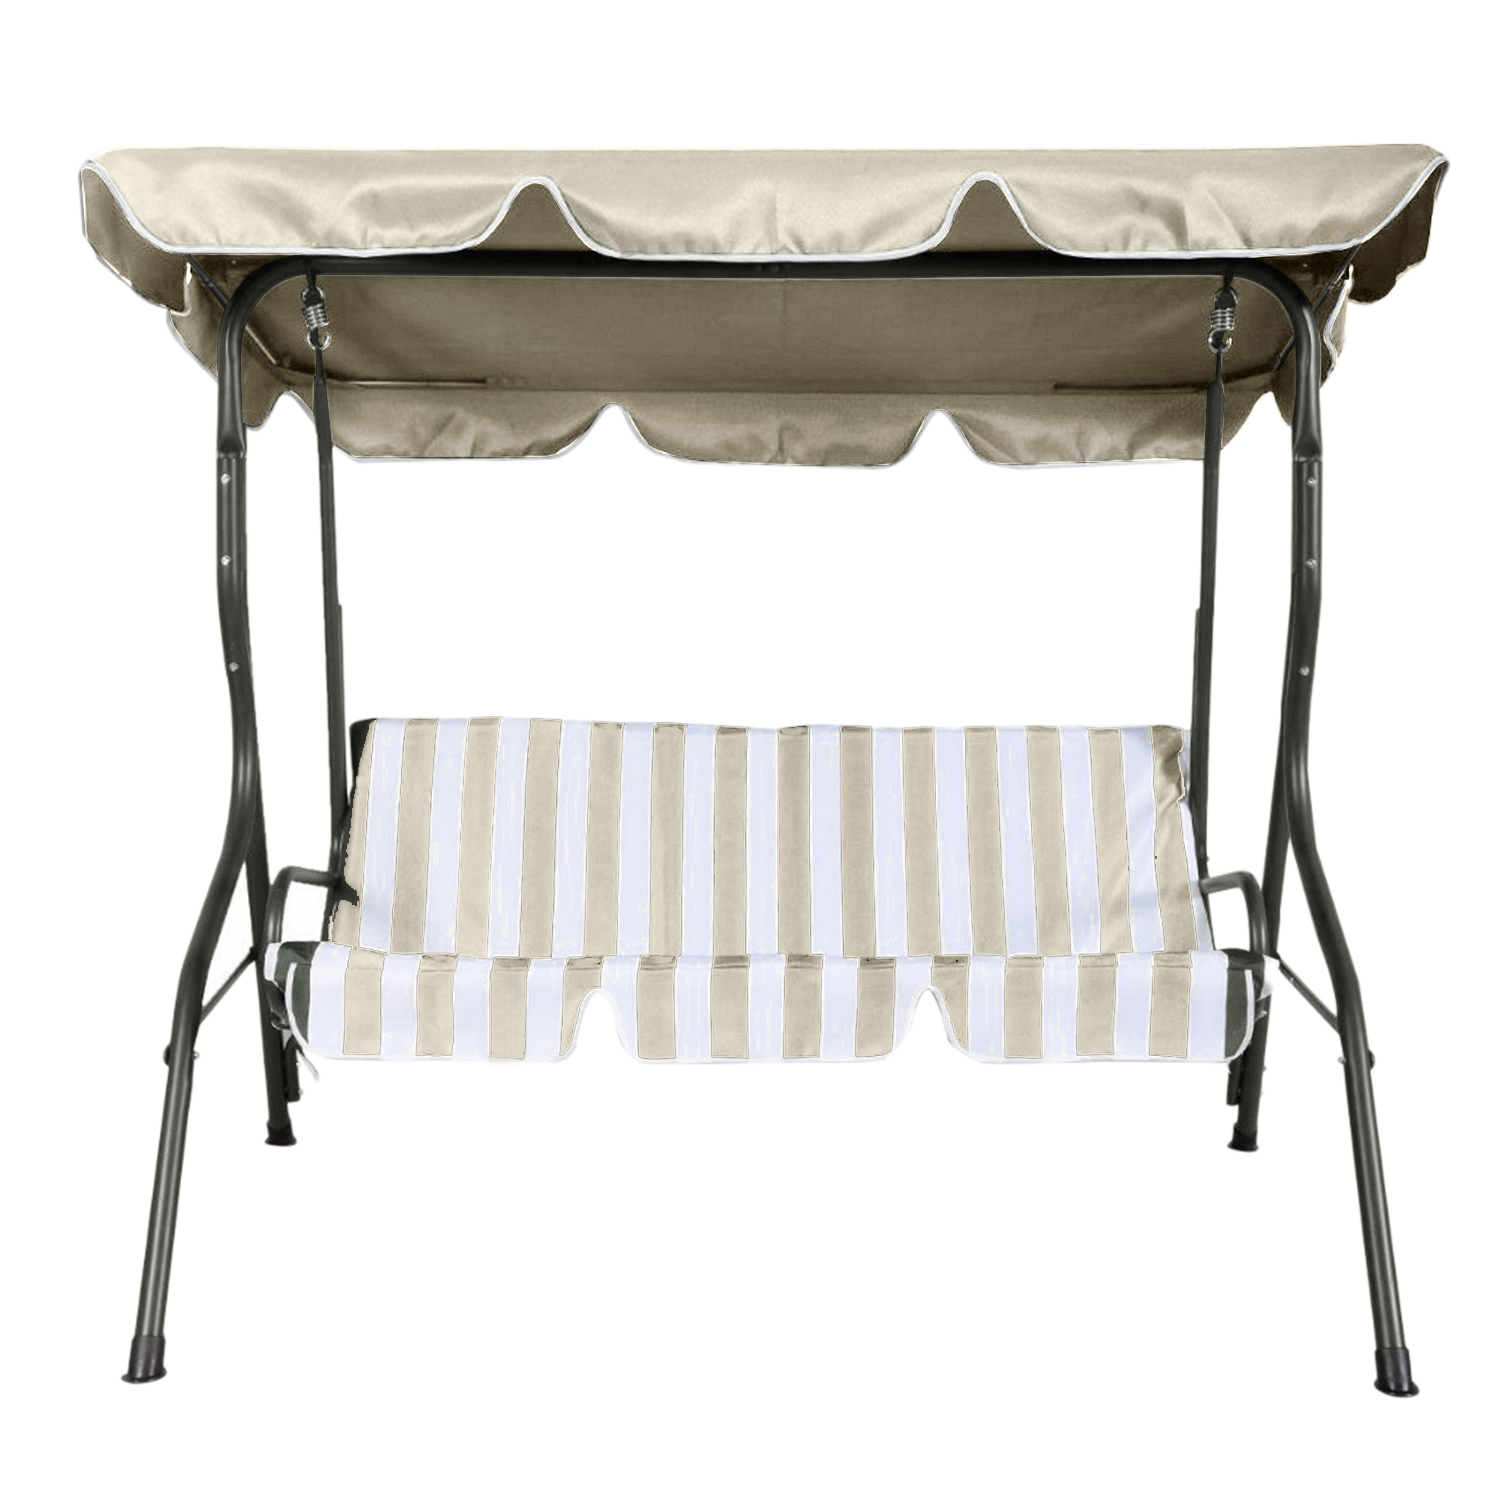 swing chair canopy replacement stokke high cushion sewing pattern cnmodle simple waterproof shell for patio polyester durable outdoor top